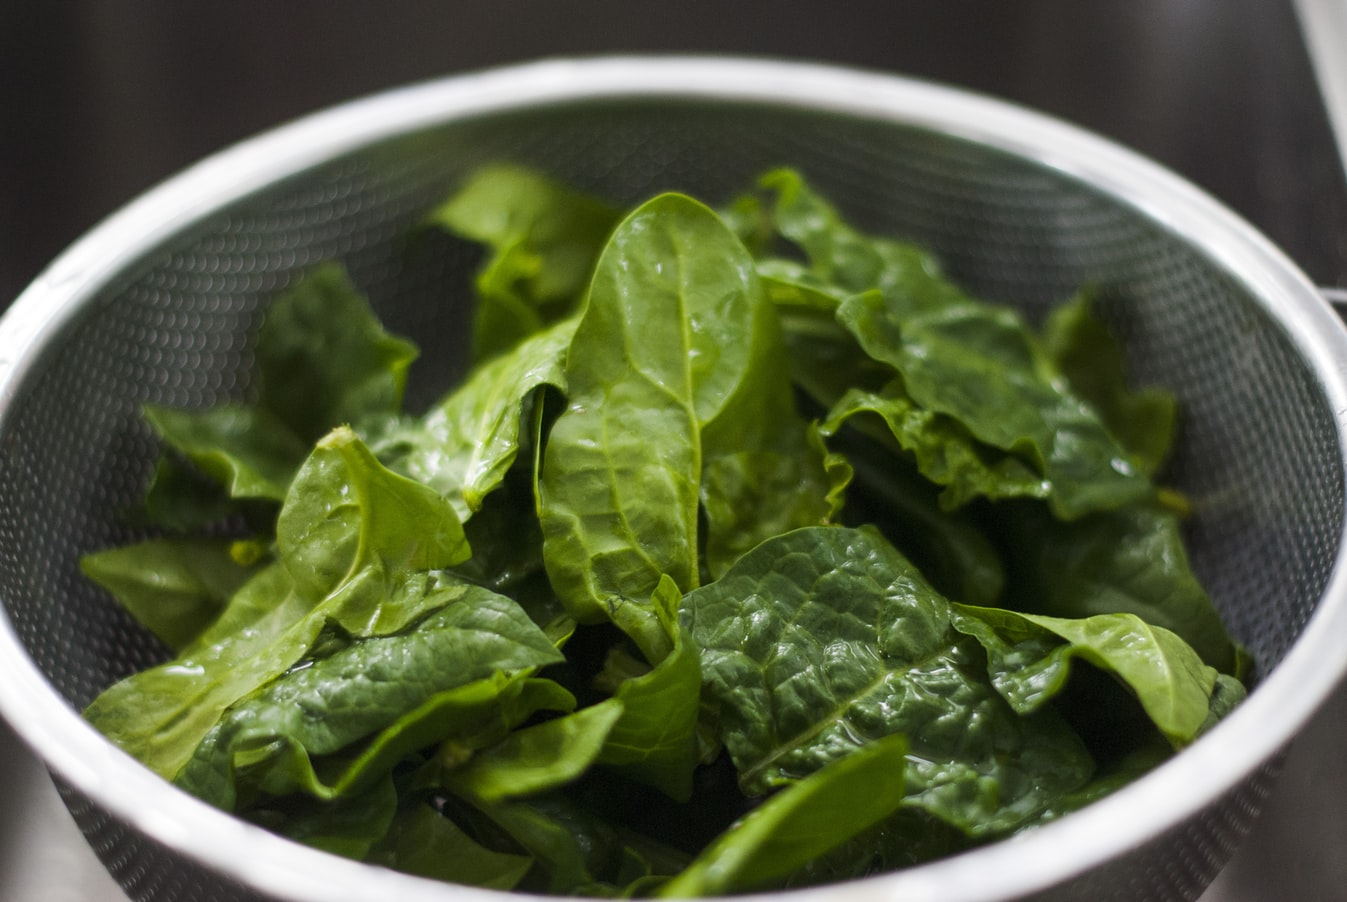 A strainer filled with fresh spinach leaves